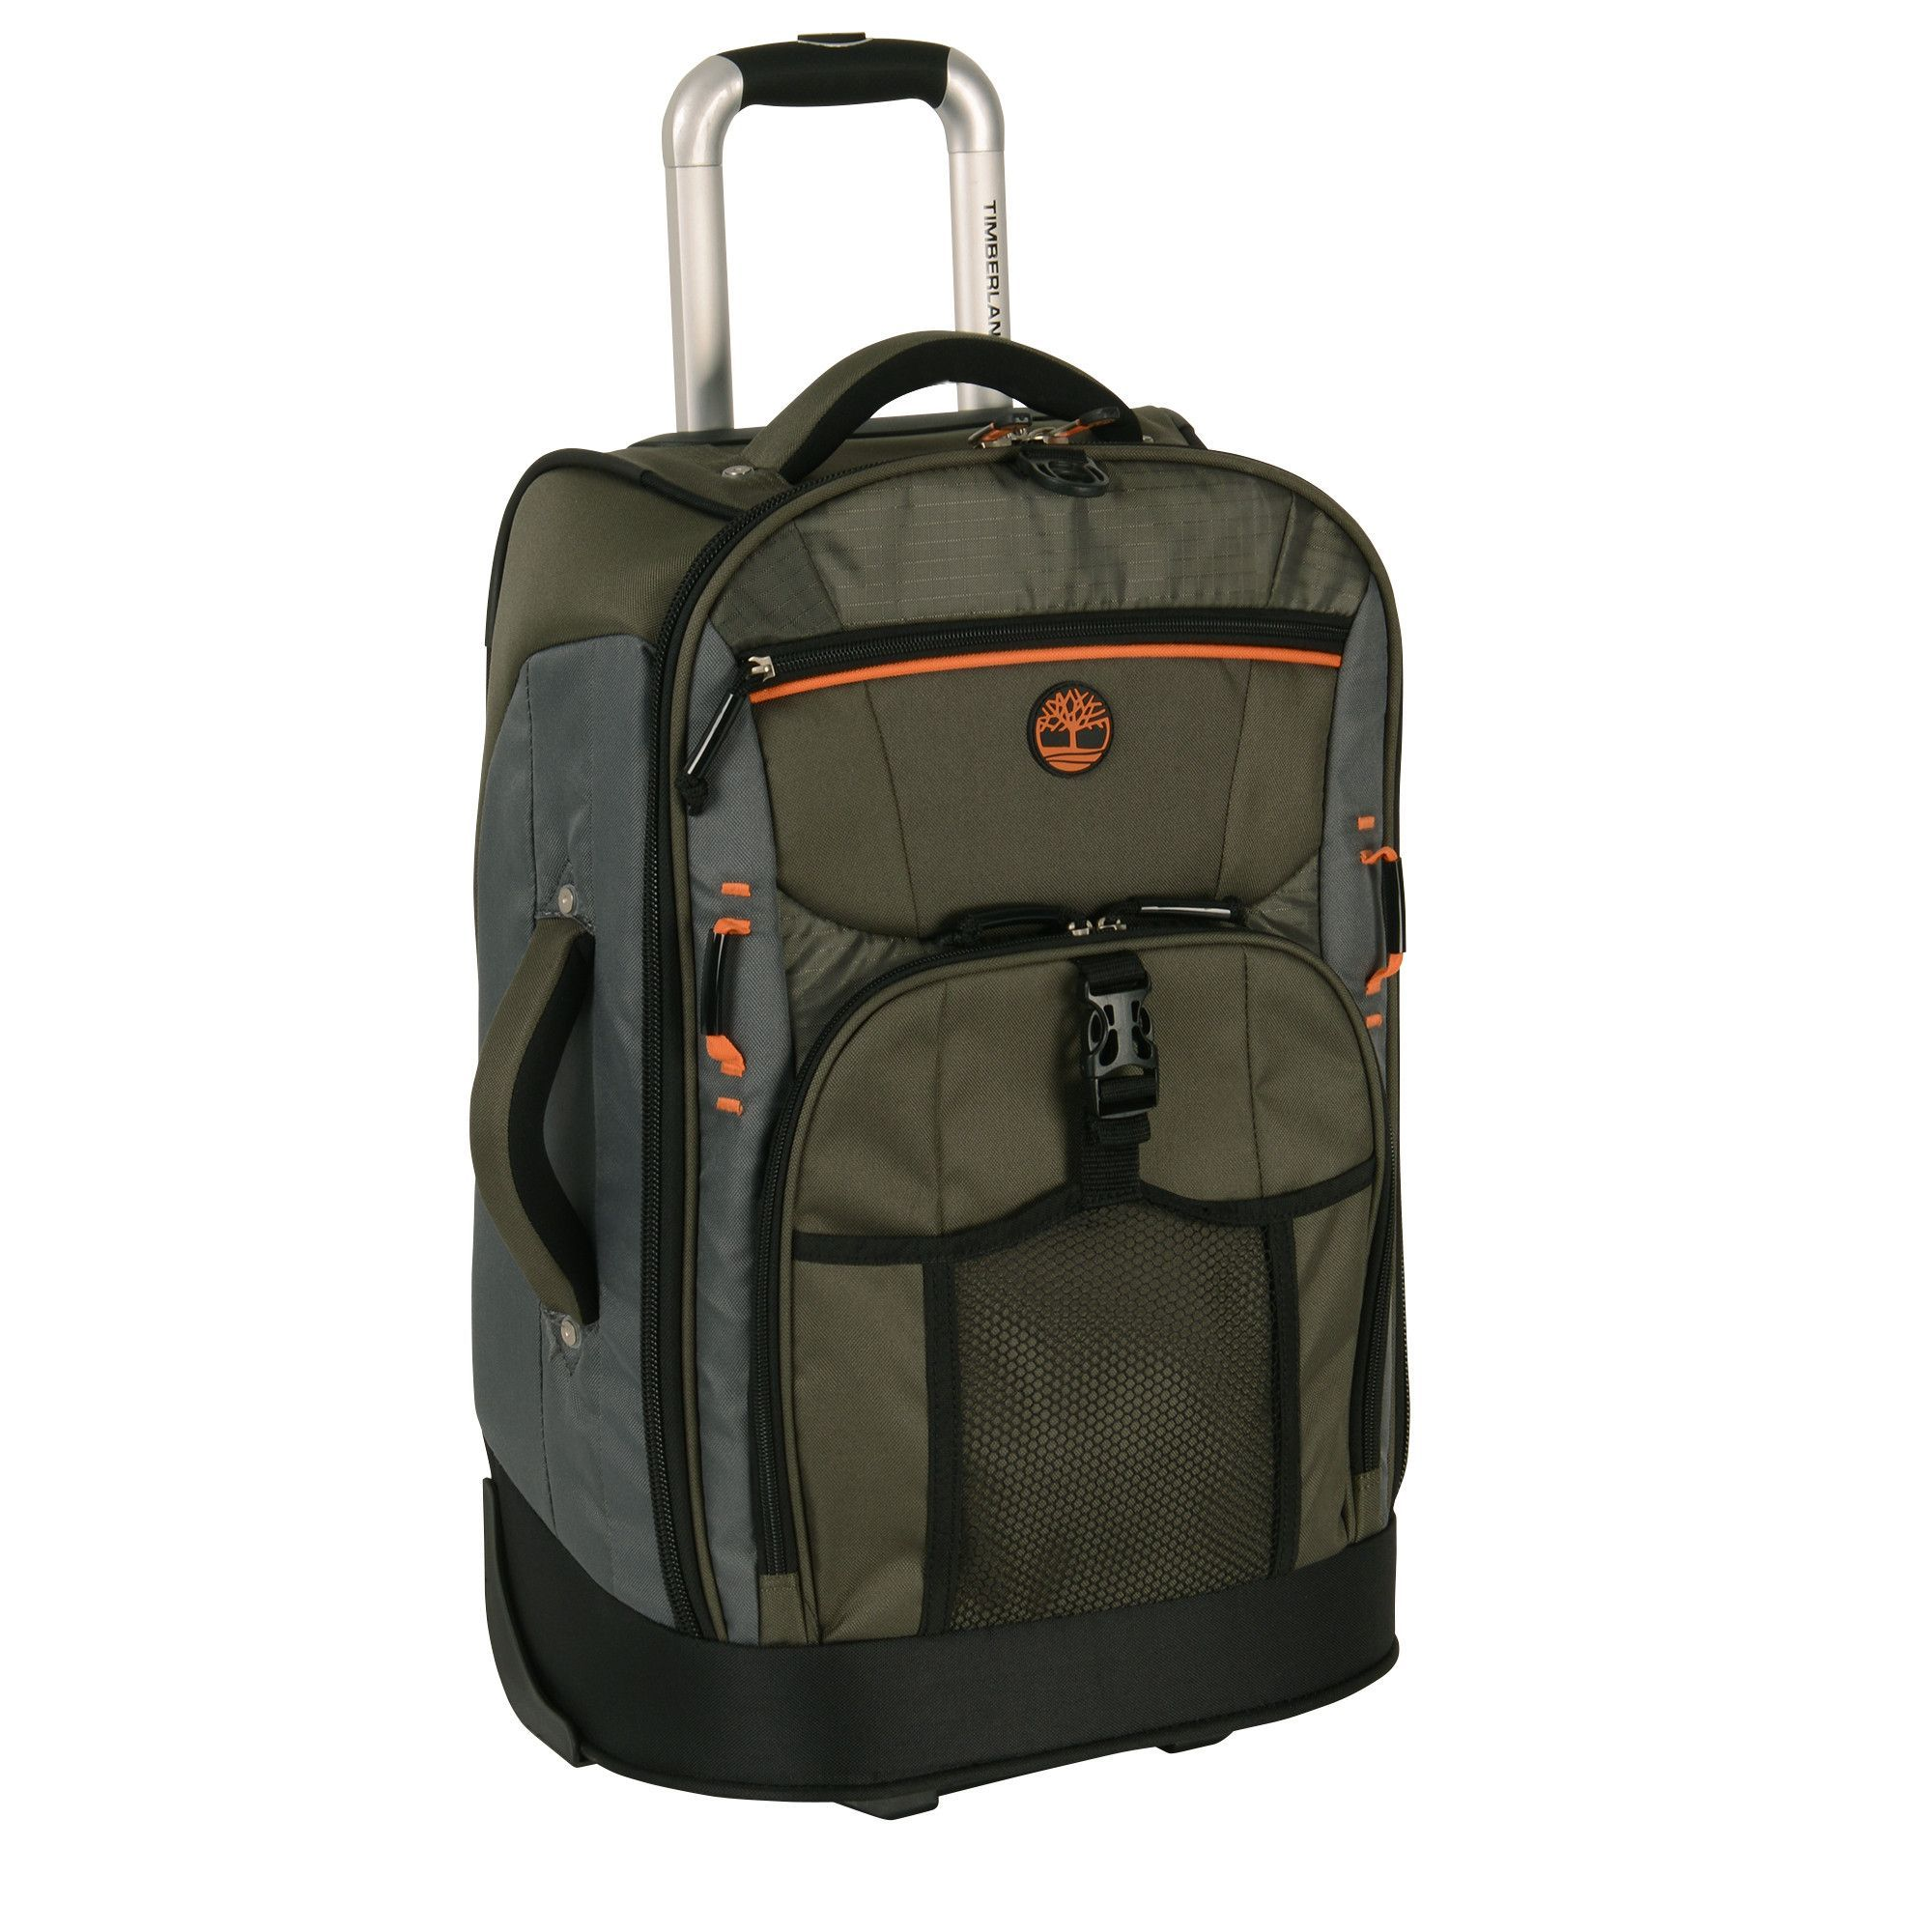 b280dd475e Light weight and PVC free luggage, Timberland Danvers River Carry On 21  Inch Wheeled Suitcase includes all the important features for a travel  adventure.